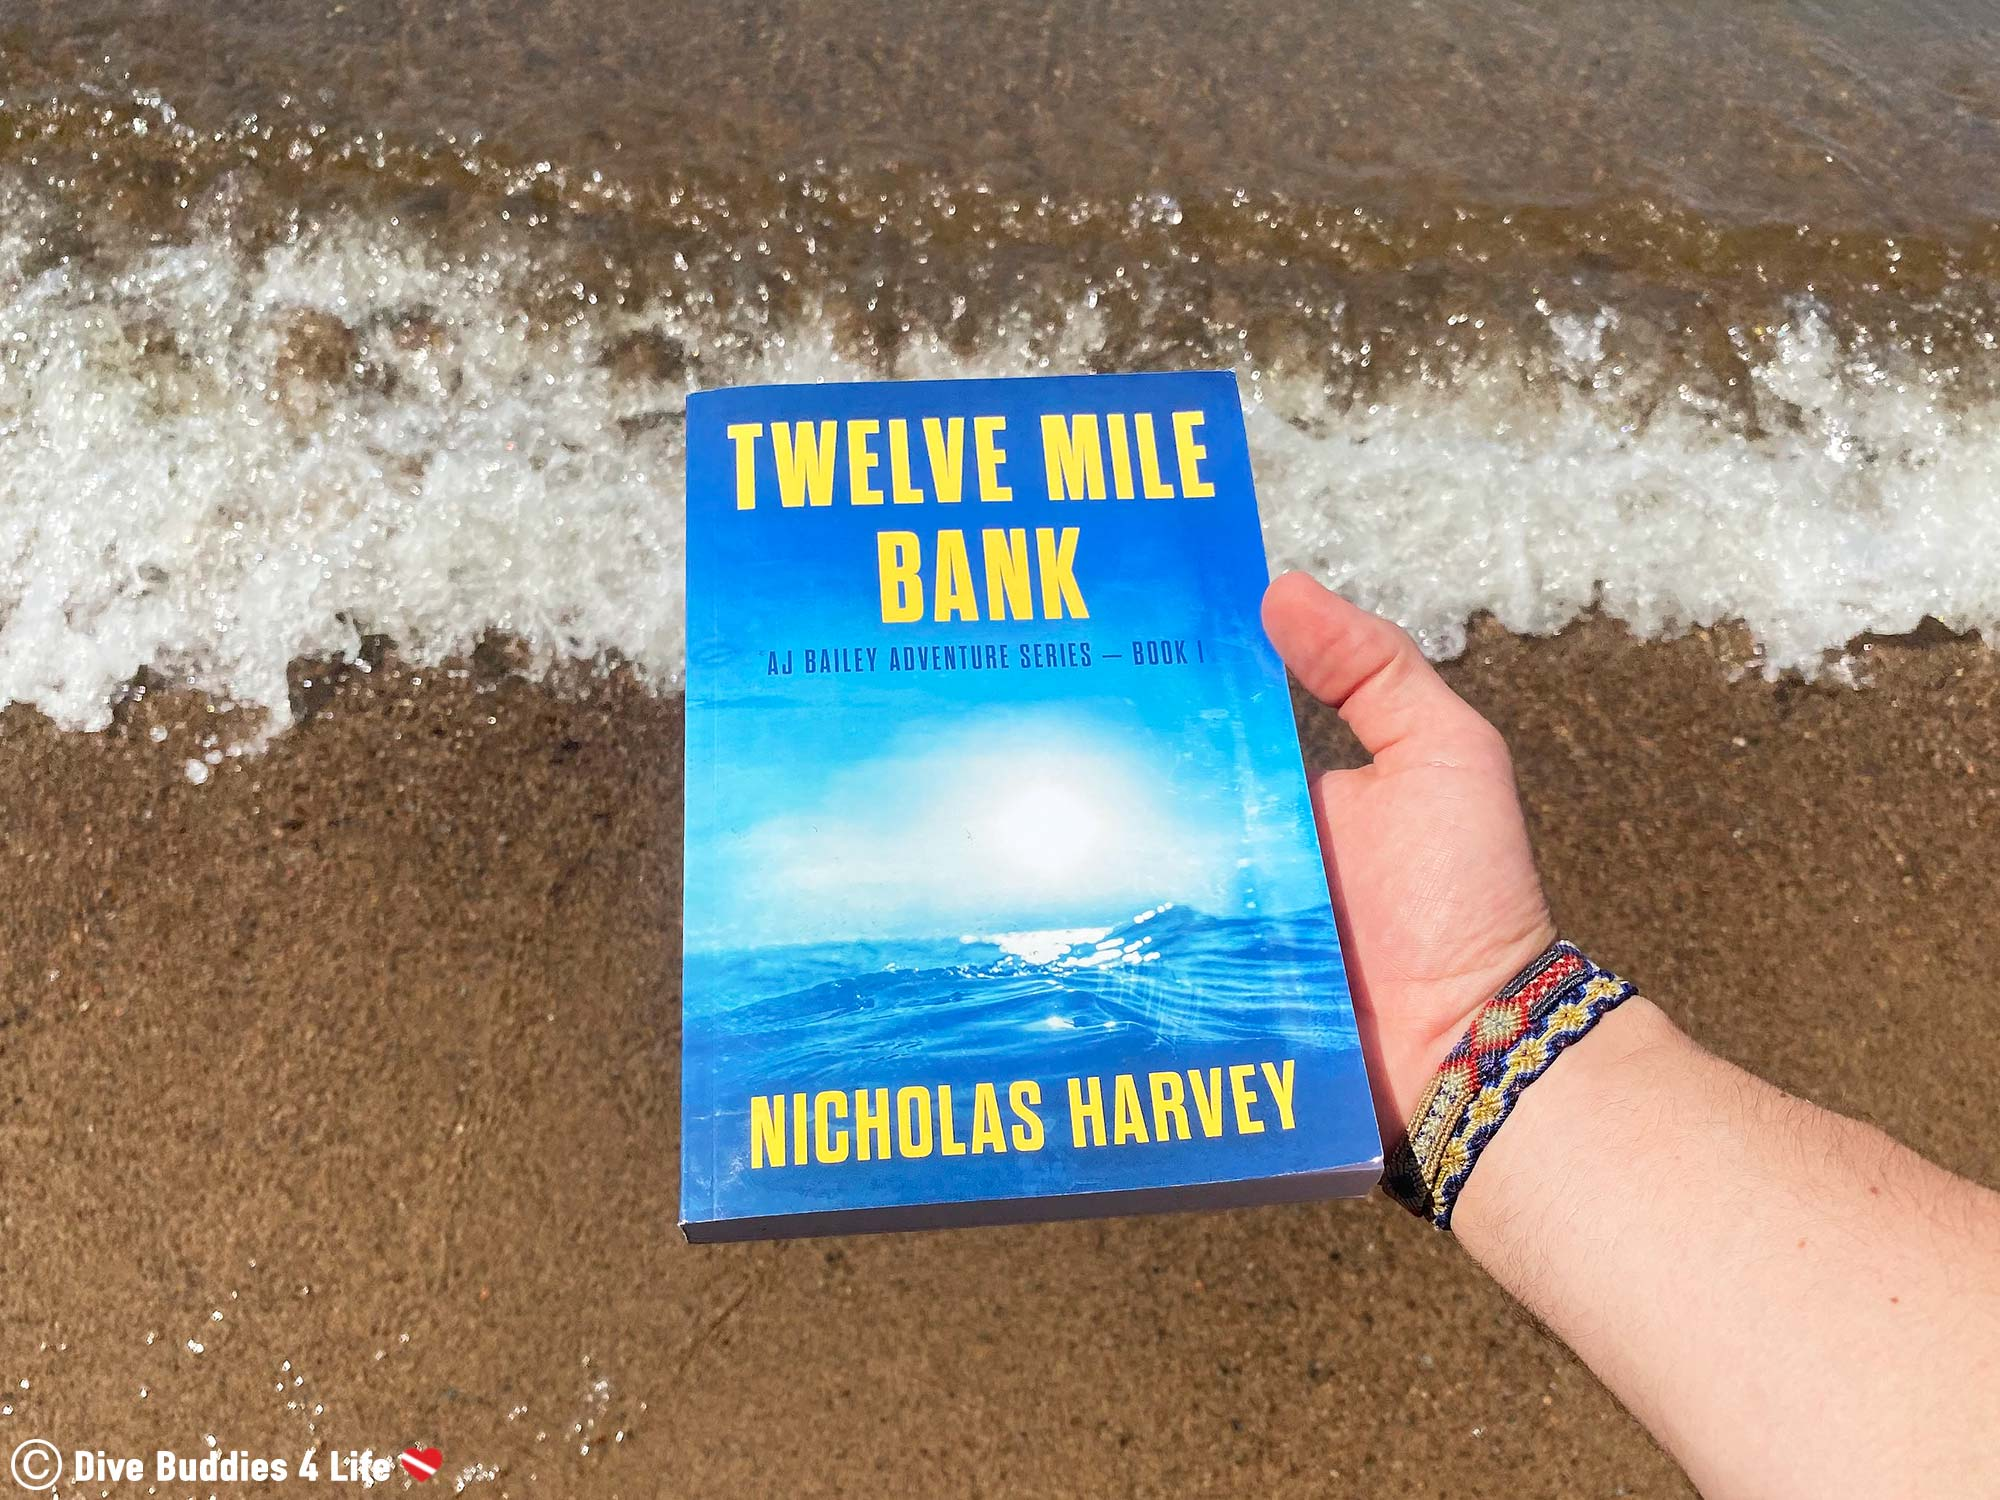 Twelve Mile Bank Scuba Diving Book With The Waves Crashing The Shore In The Background